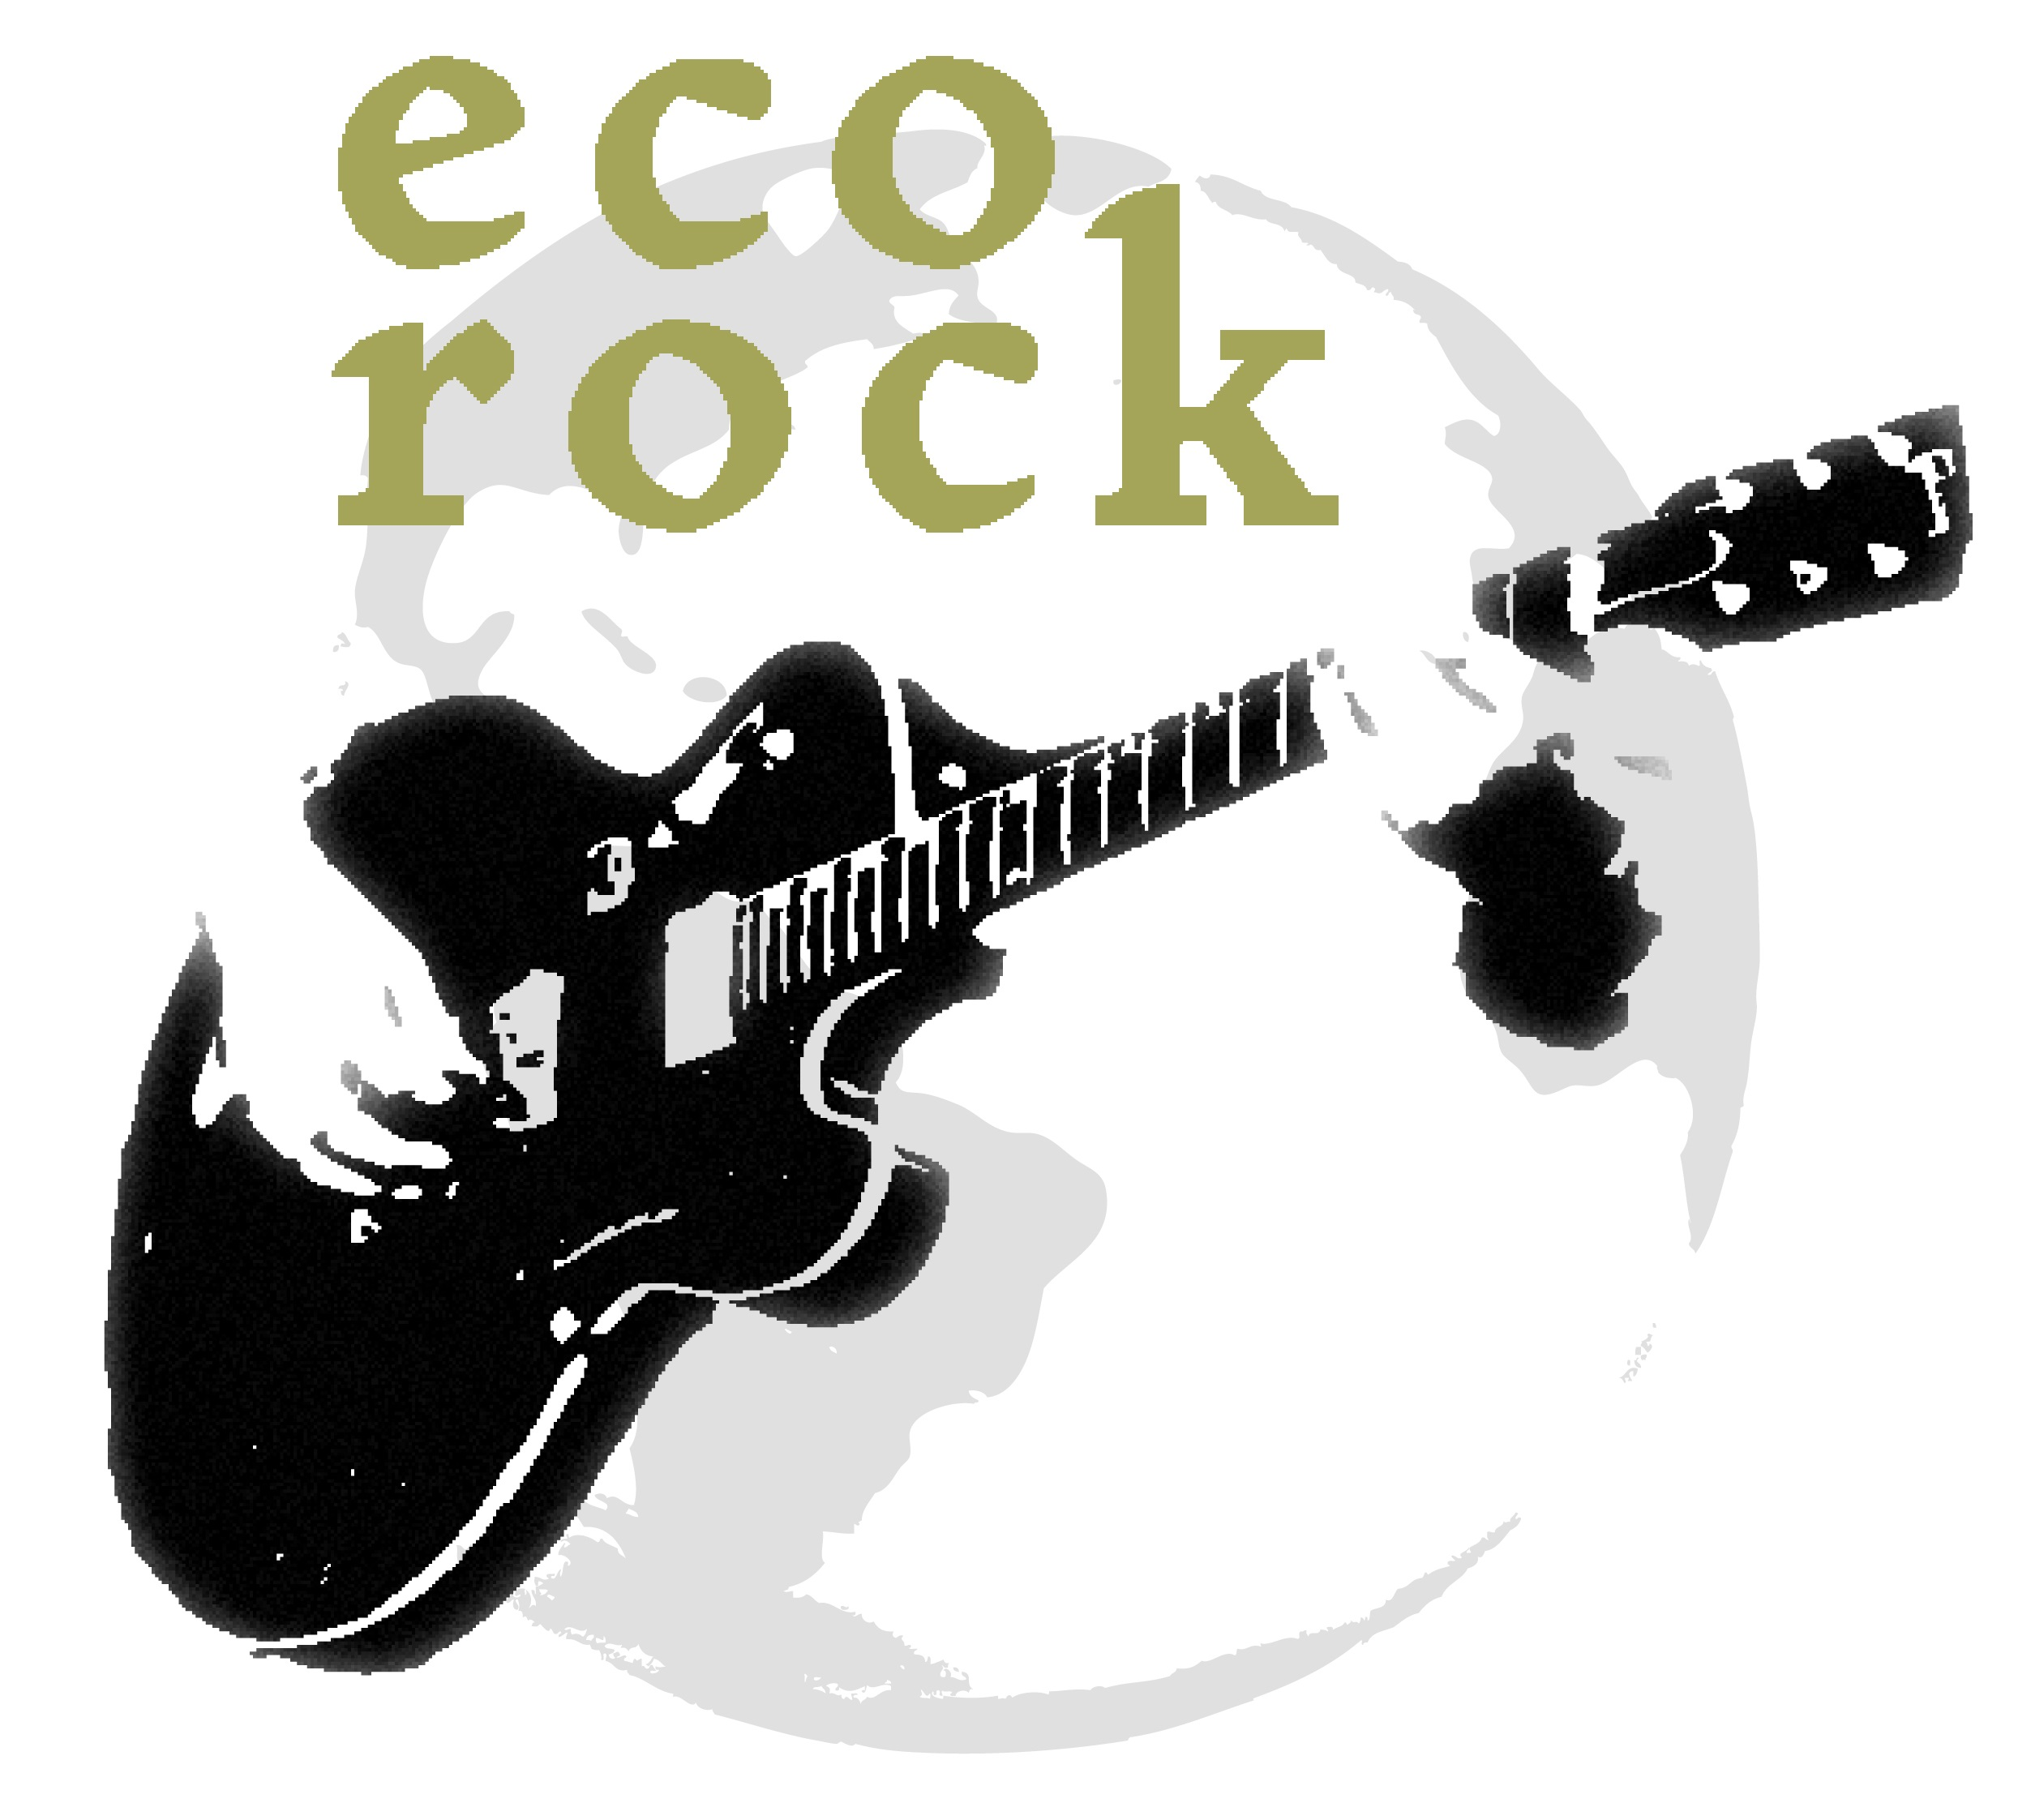 Eco_rock_logo.jpg